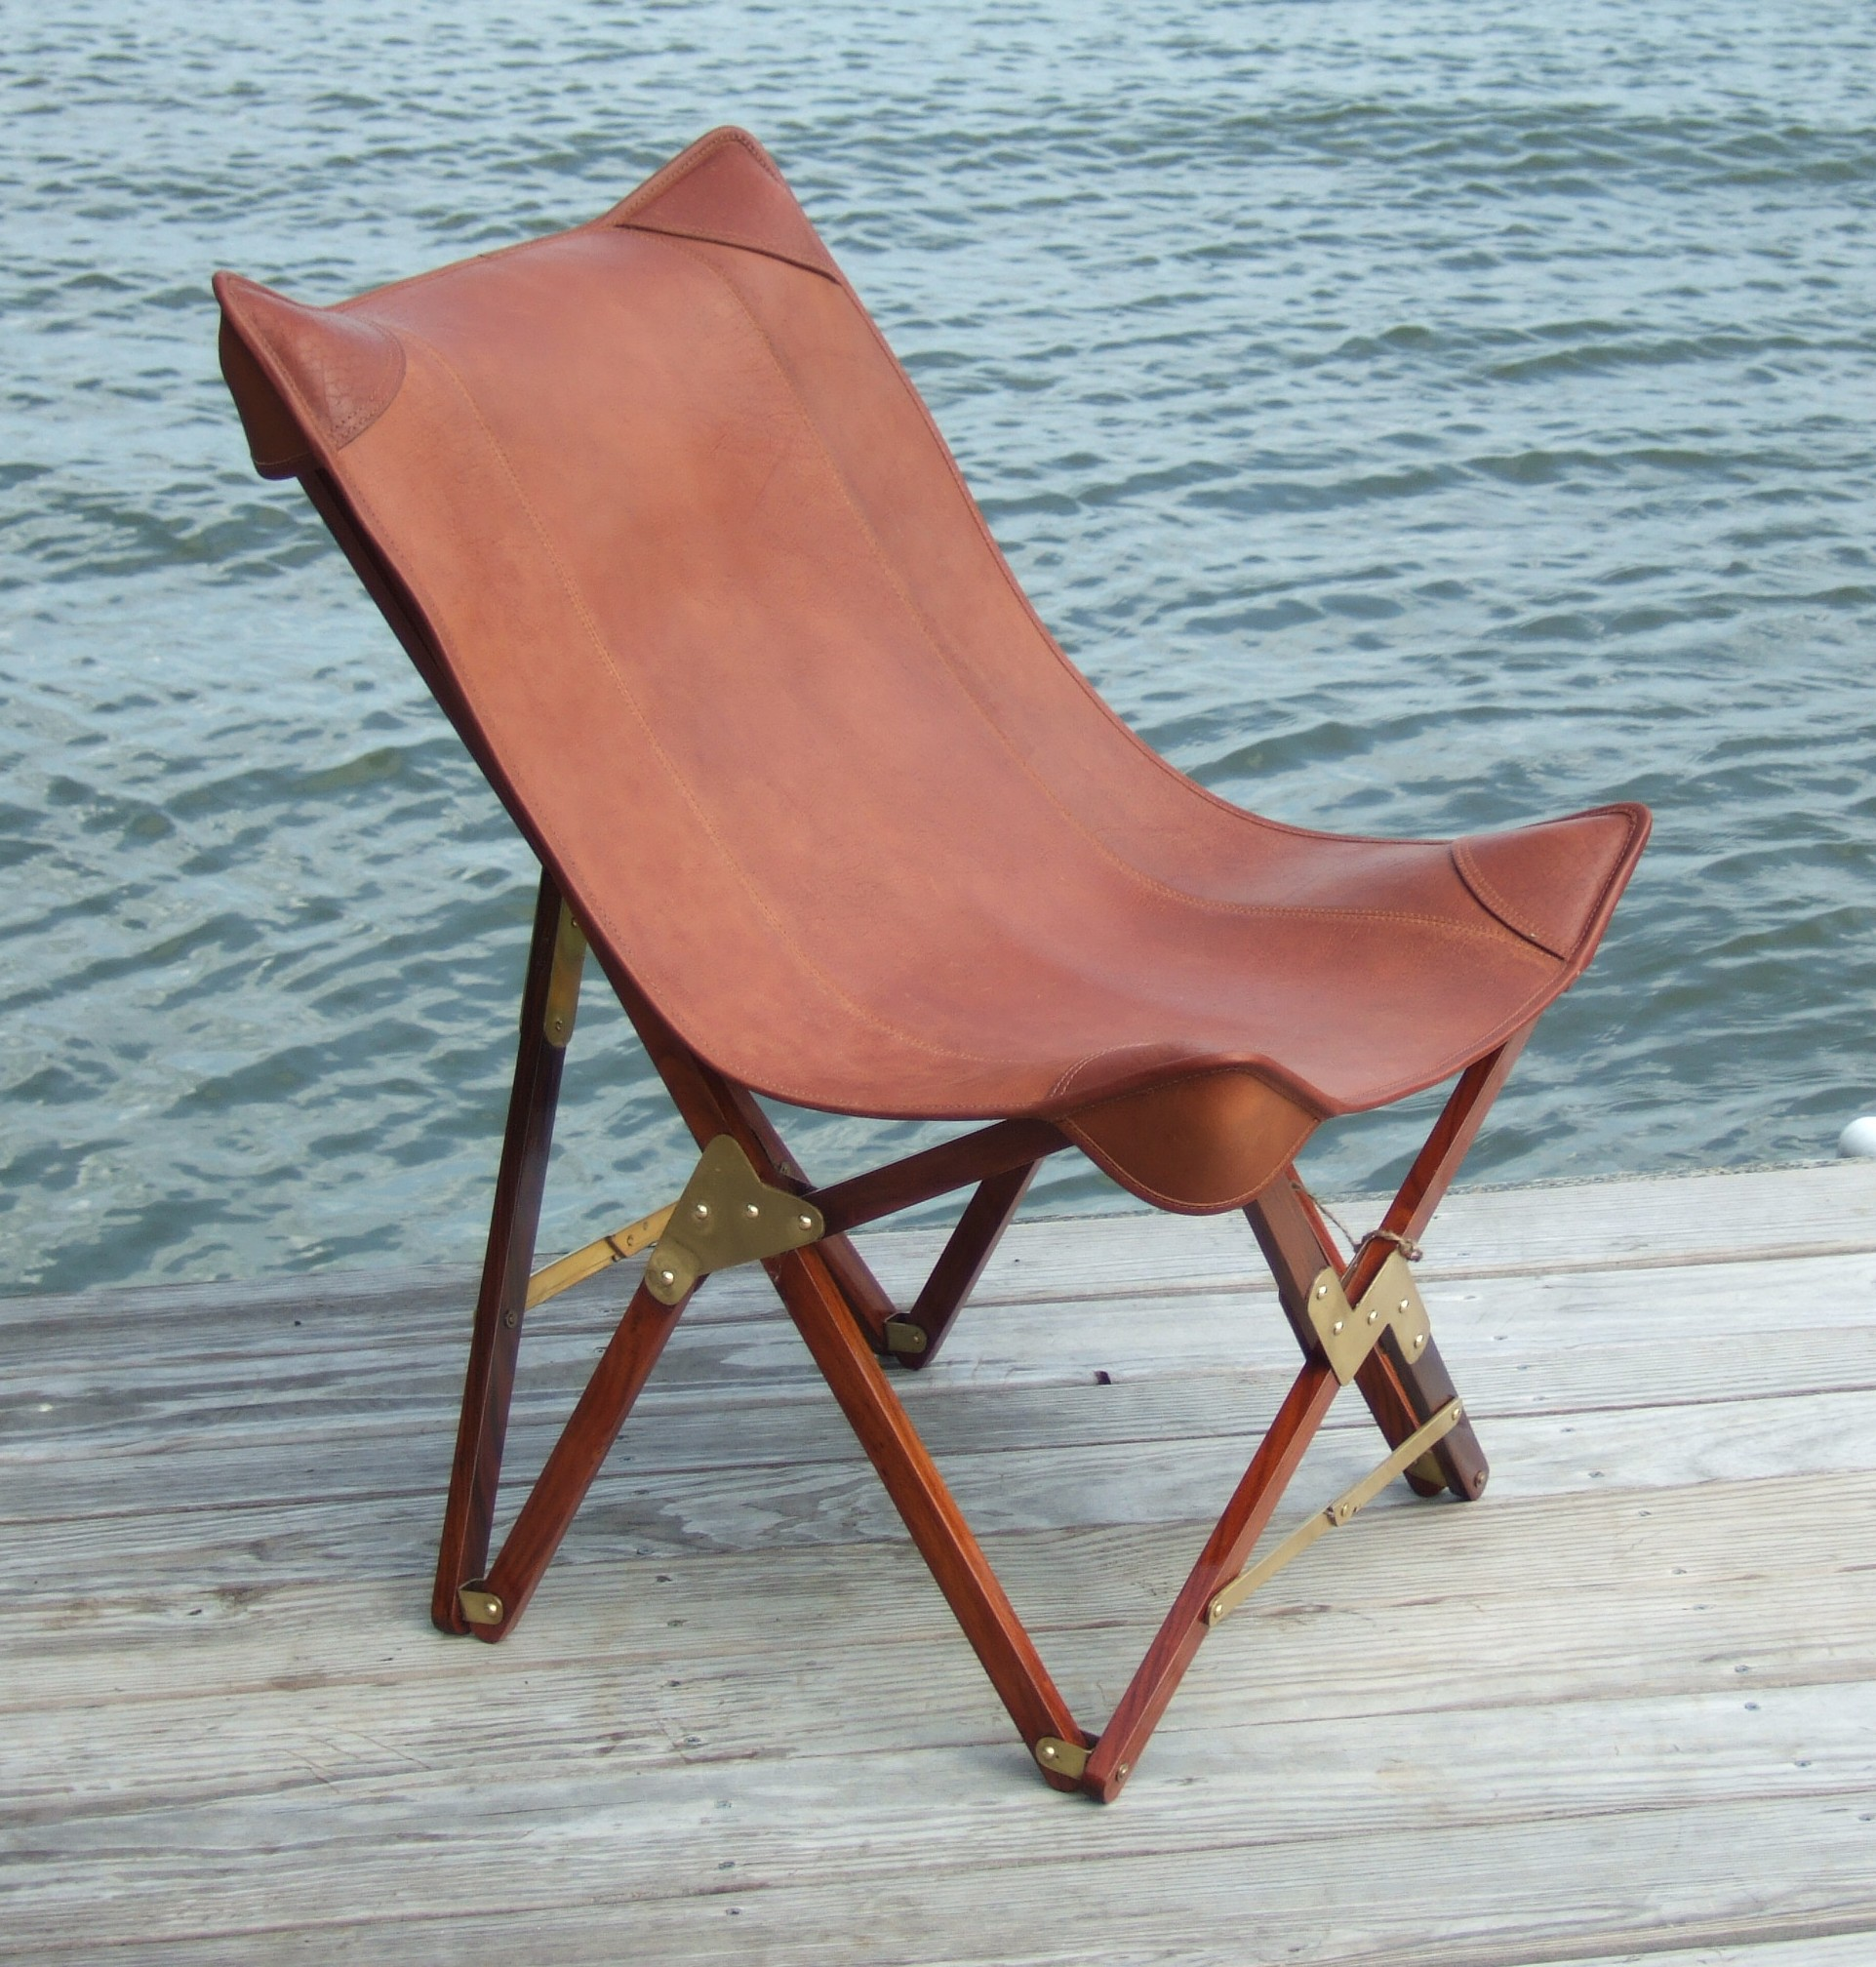 Folding Leather Camp Chairs – Riveted